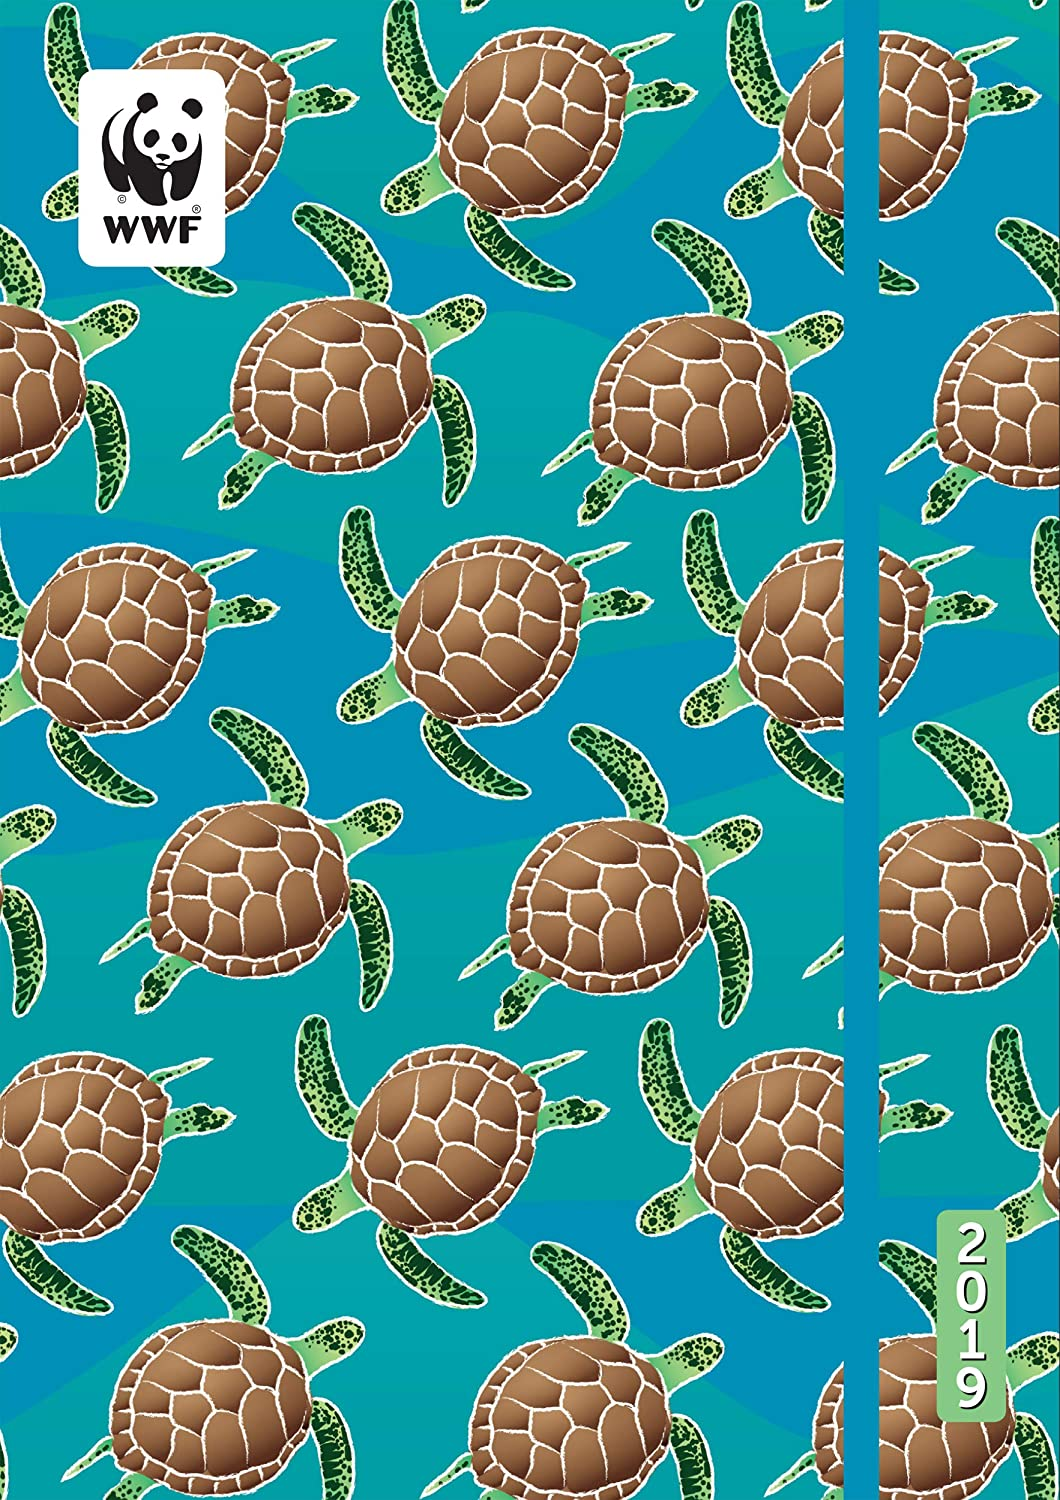 Date And Time Calendar August - December 2019 Amazon.: WWF Turtles Academic Planner Calendar 2019 Flexible